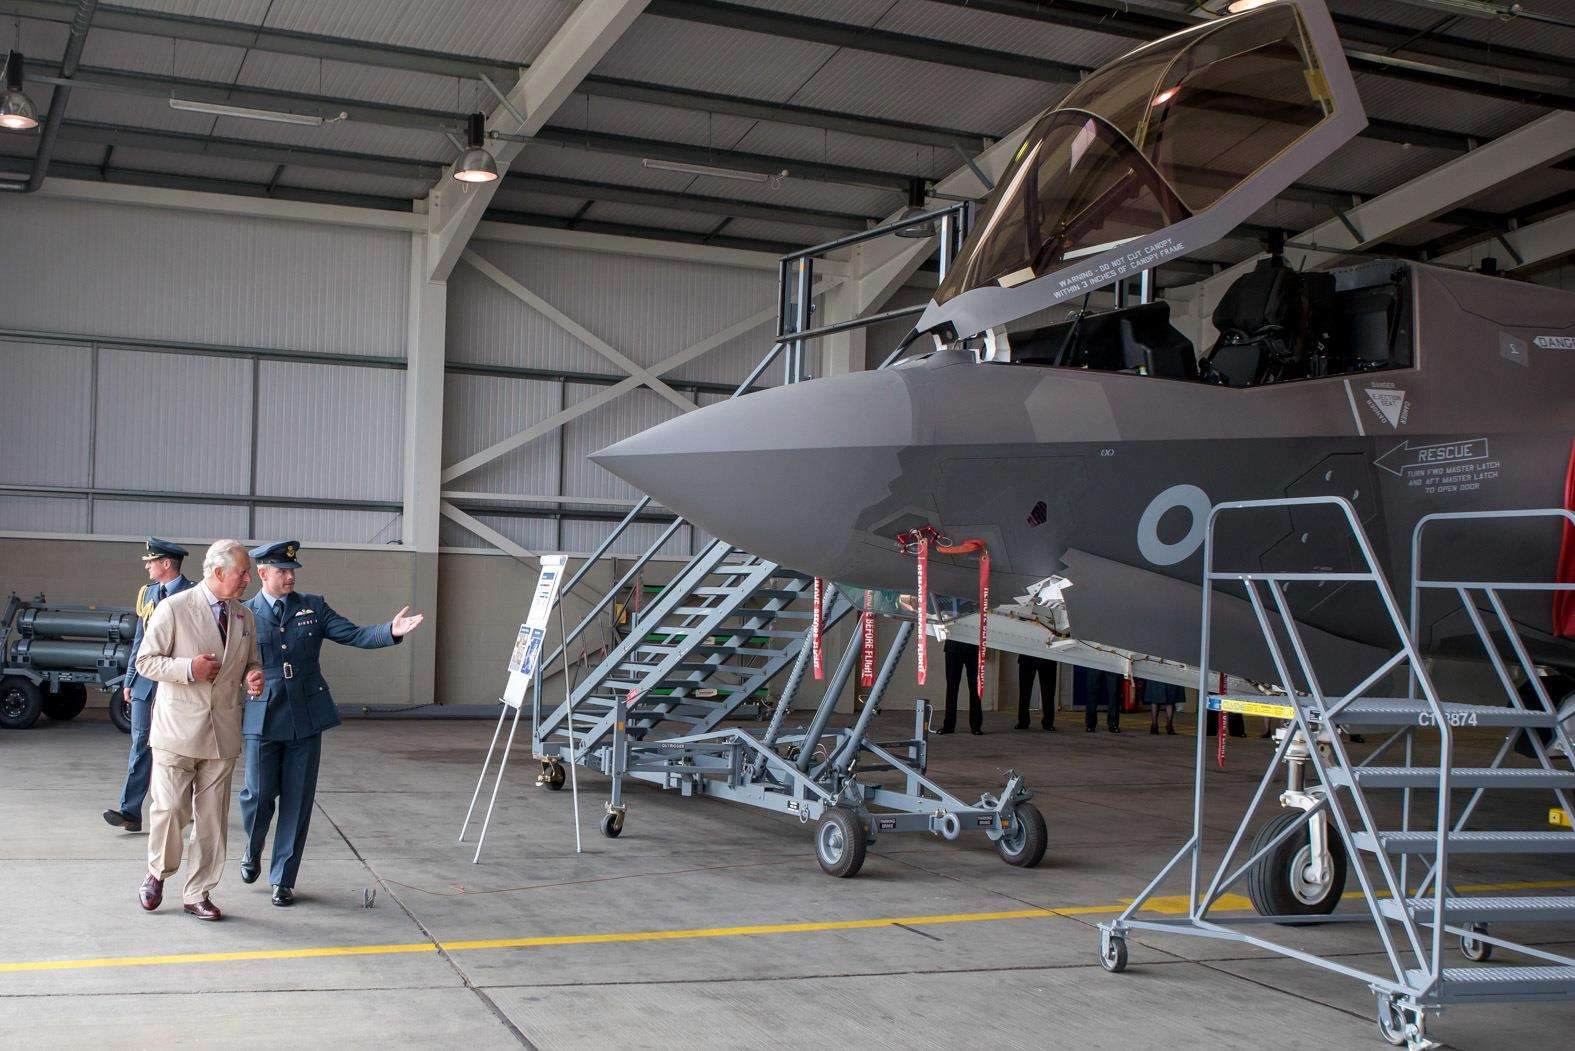 HRH The Prince of Wales visits RAF Marham to see the new F35 Lightning II aircraft of 617 Squadron. Wing Commander John Butcher shows HRH Prince Charles around the aircraft.. (3315070)